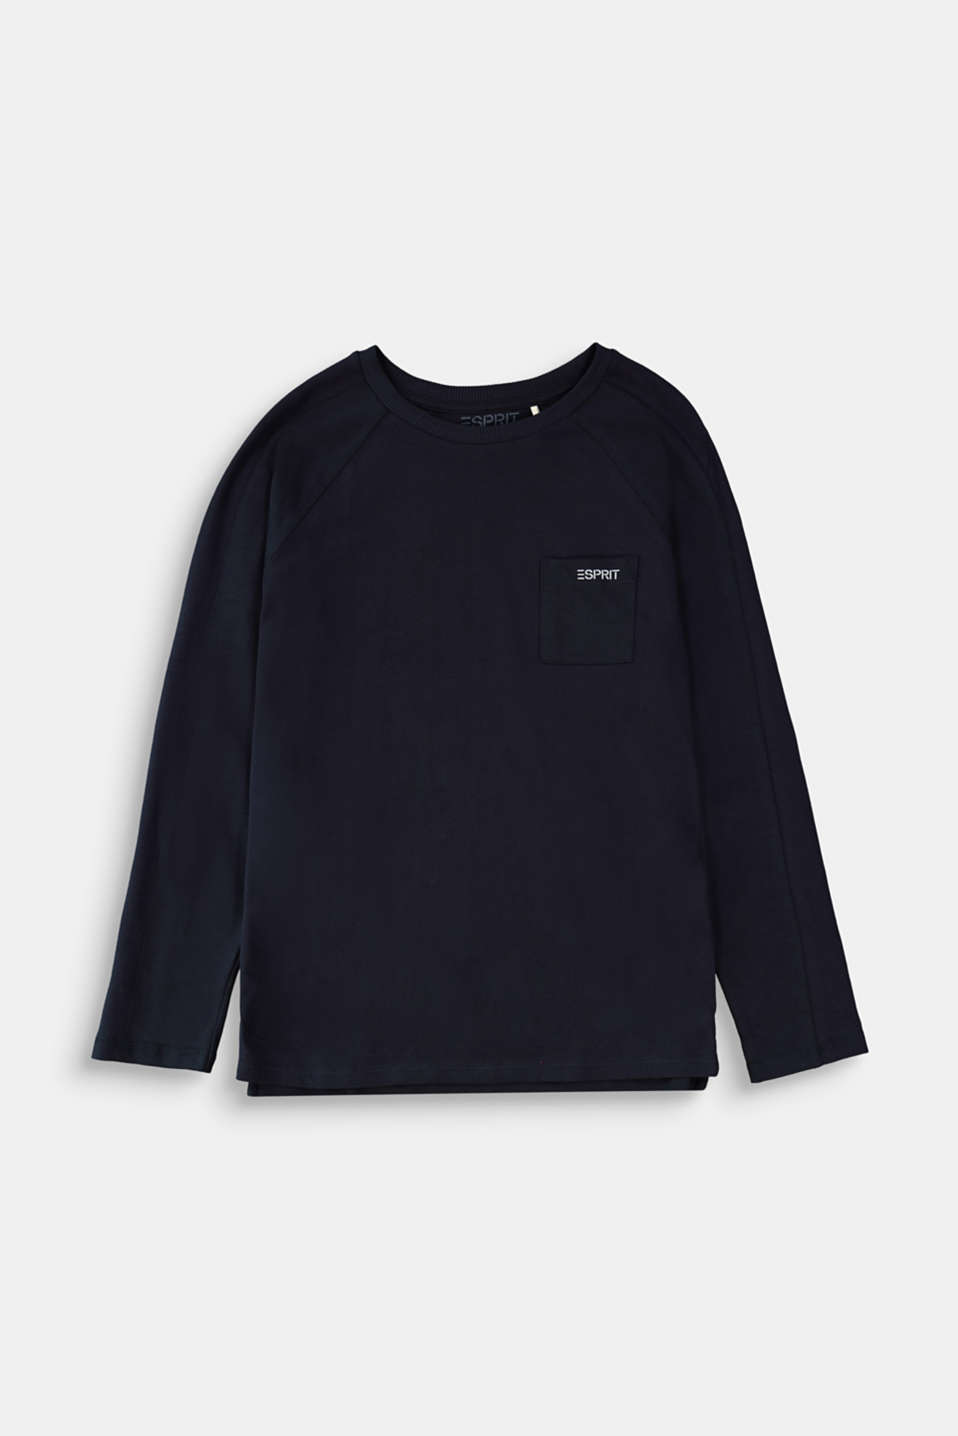 Esprit - Statement long sleeve top made of 100% cotton